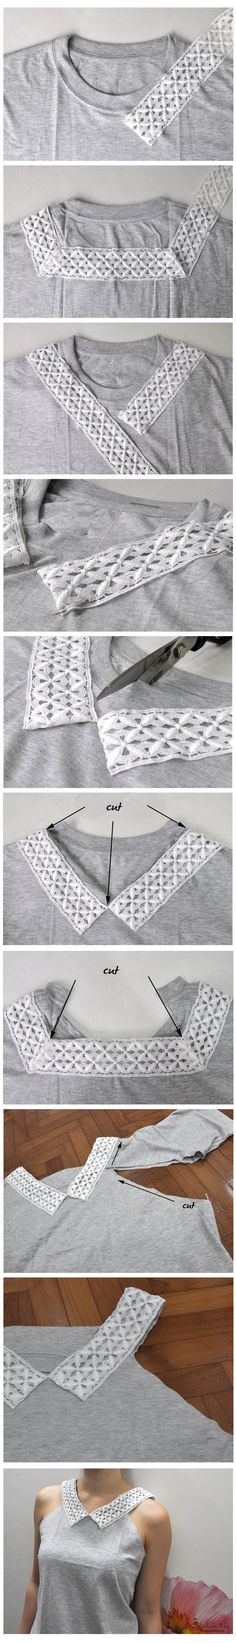 how to upcycle a plain old t-shirt #tutorial